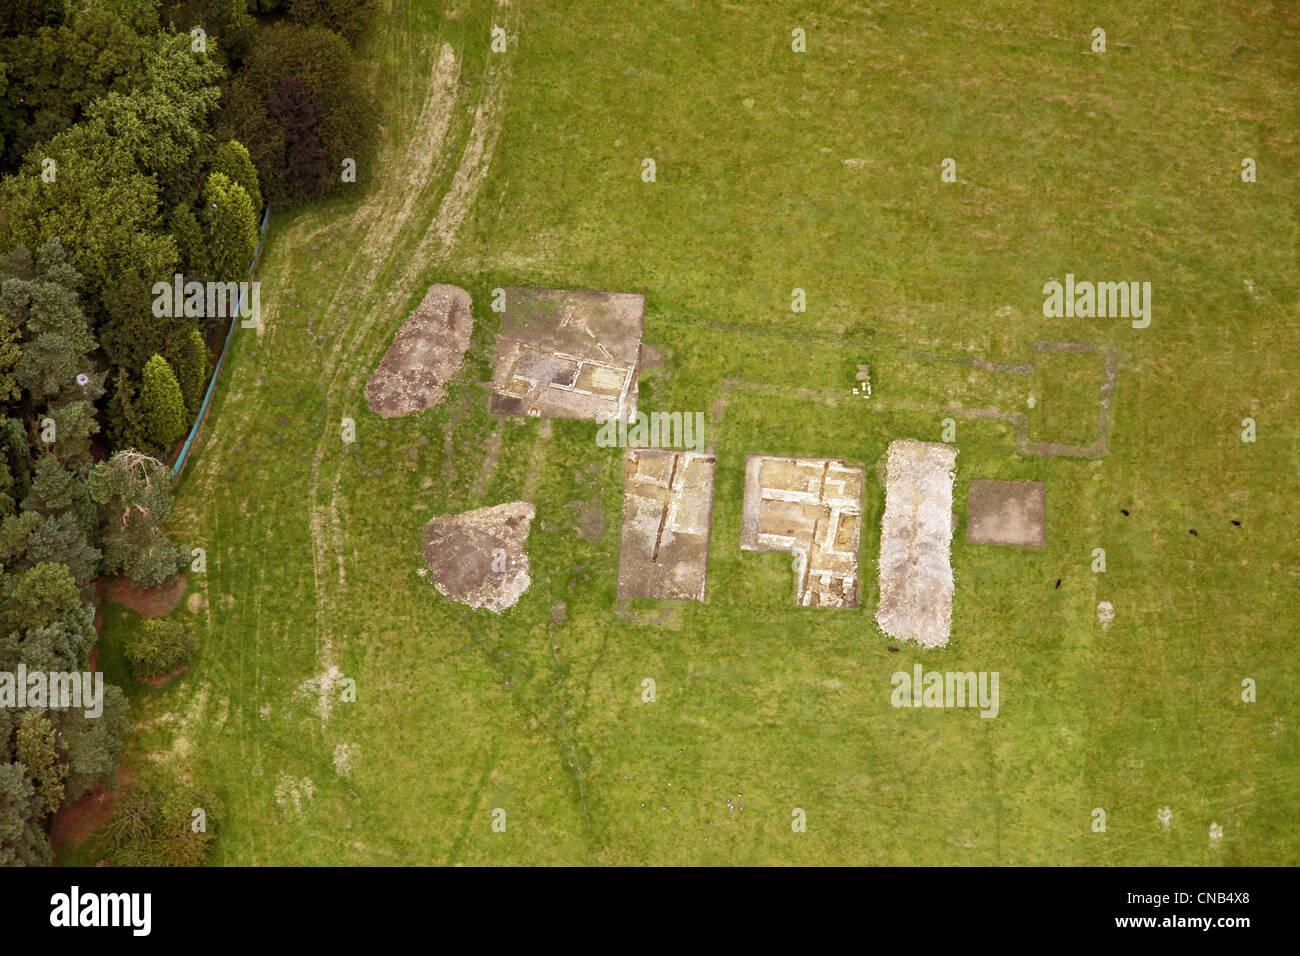 aerial view of a archeology dig - Stock Image